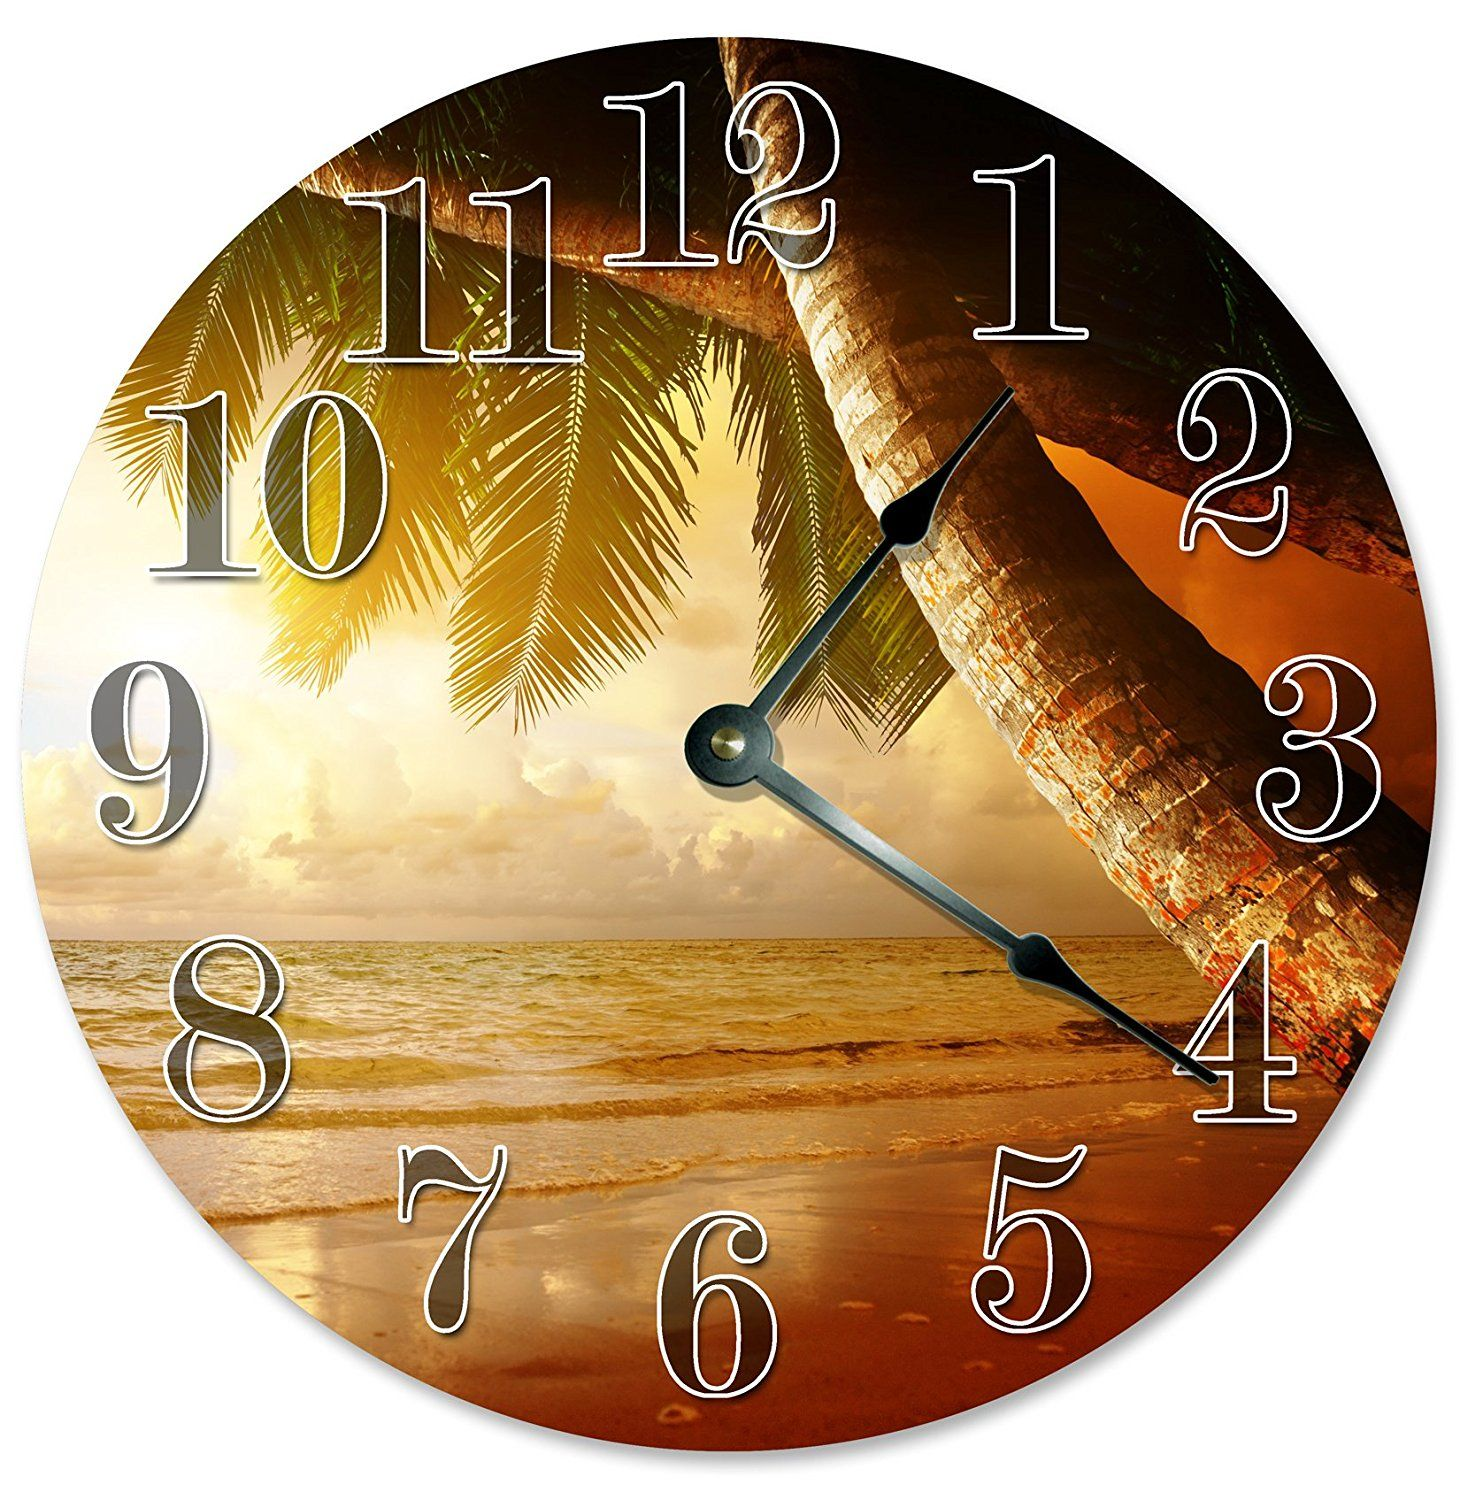 Large 10 5 Wall Clock Decorative Round Wall Clock Home Decor